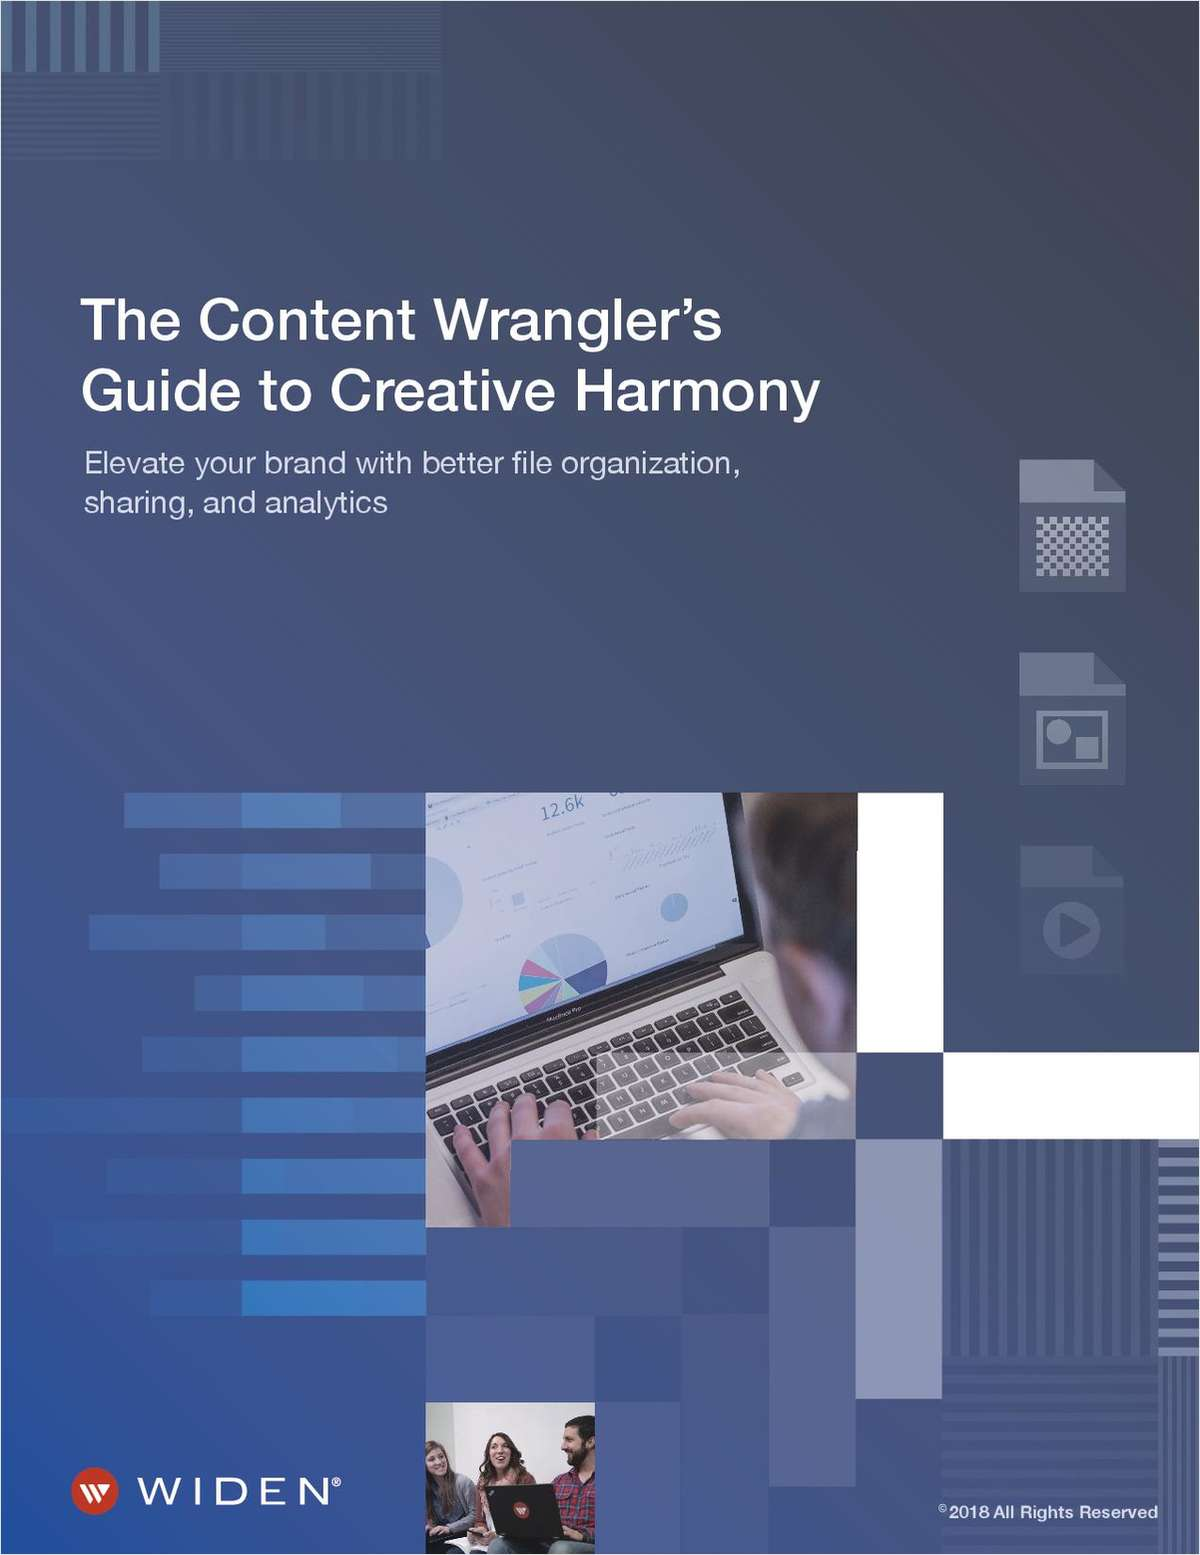 The Content Wrangler's Guide to Creative Harmony